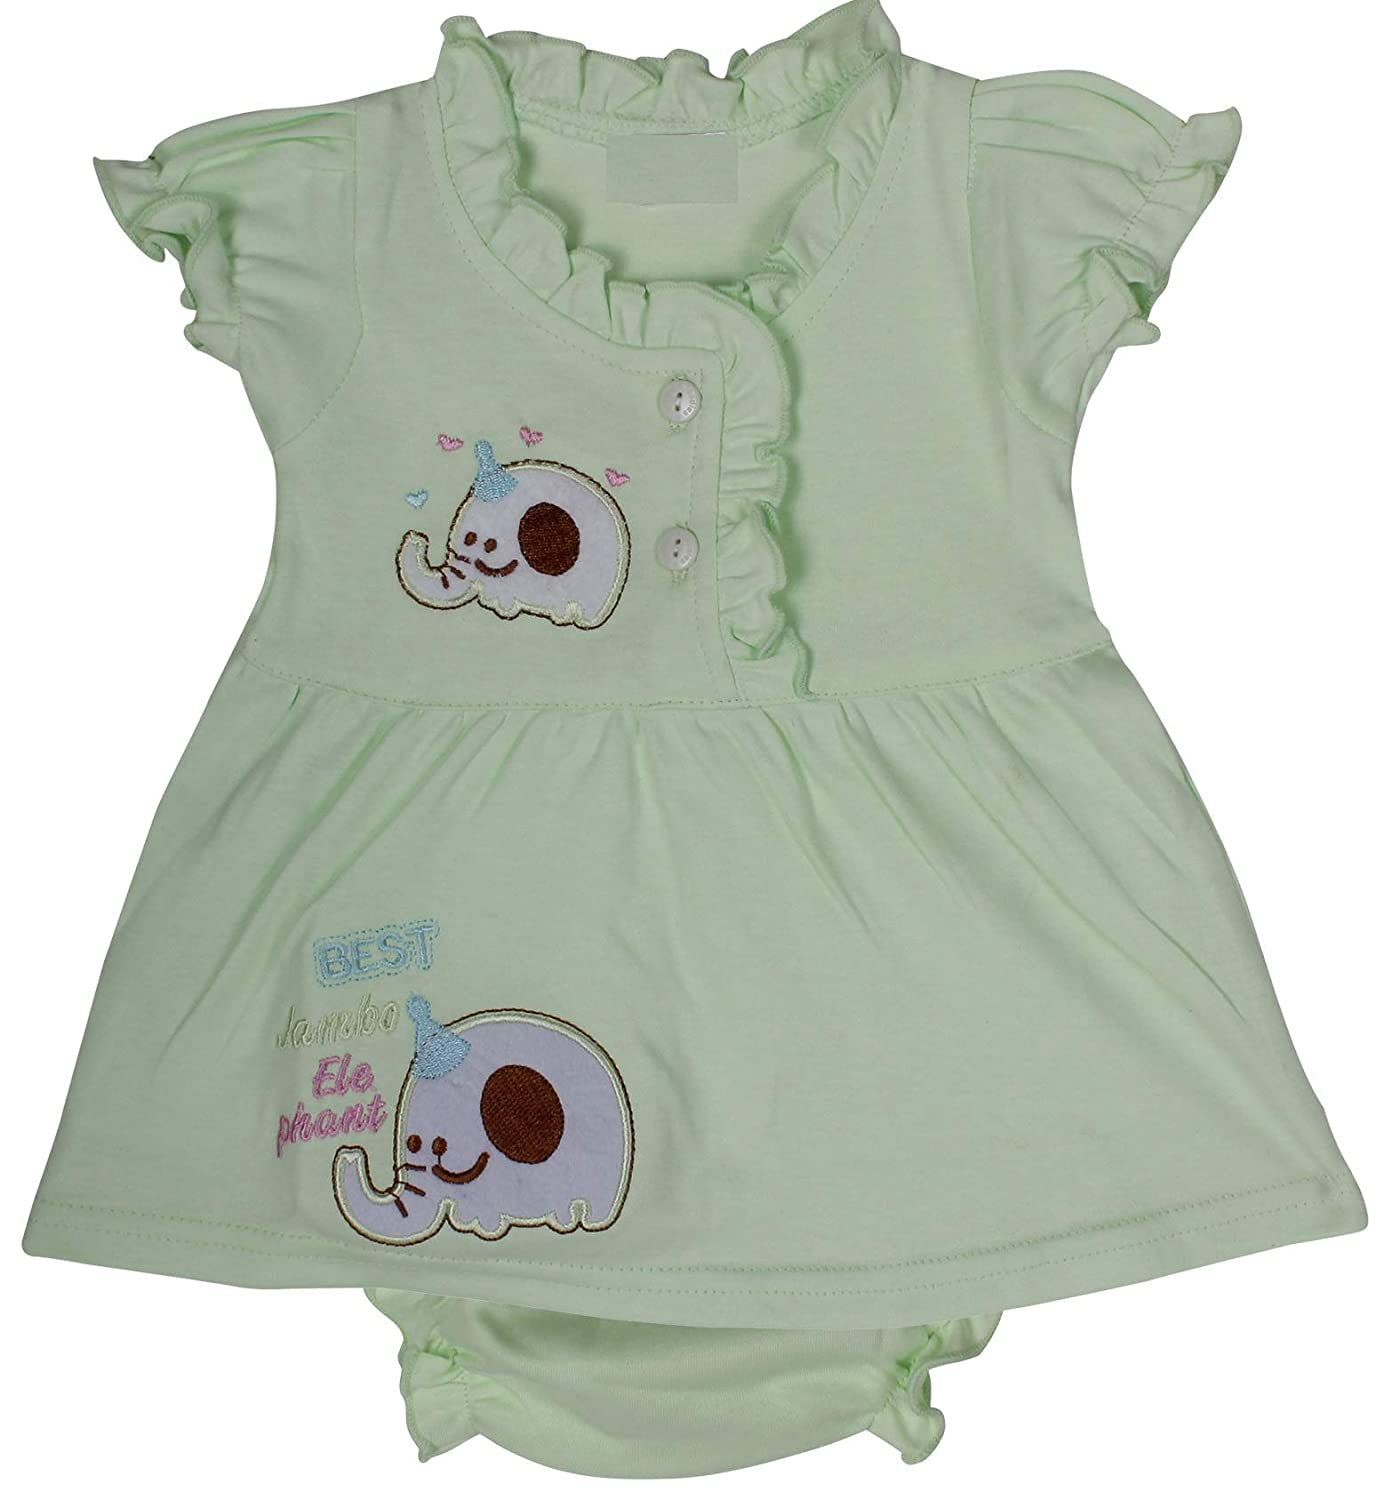 d80b26867c7a Icable High Quality Baby Girl's Cotton Cute Printed Frock with Nappies  (Blue, 3-6 Months): Amazon.in: Baby